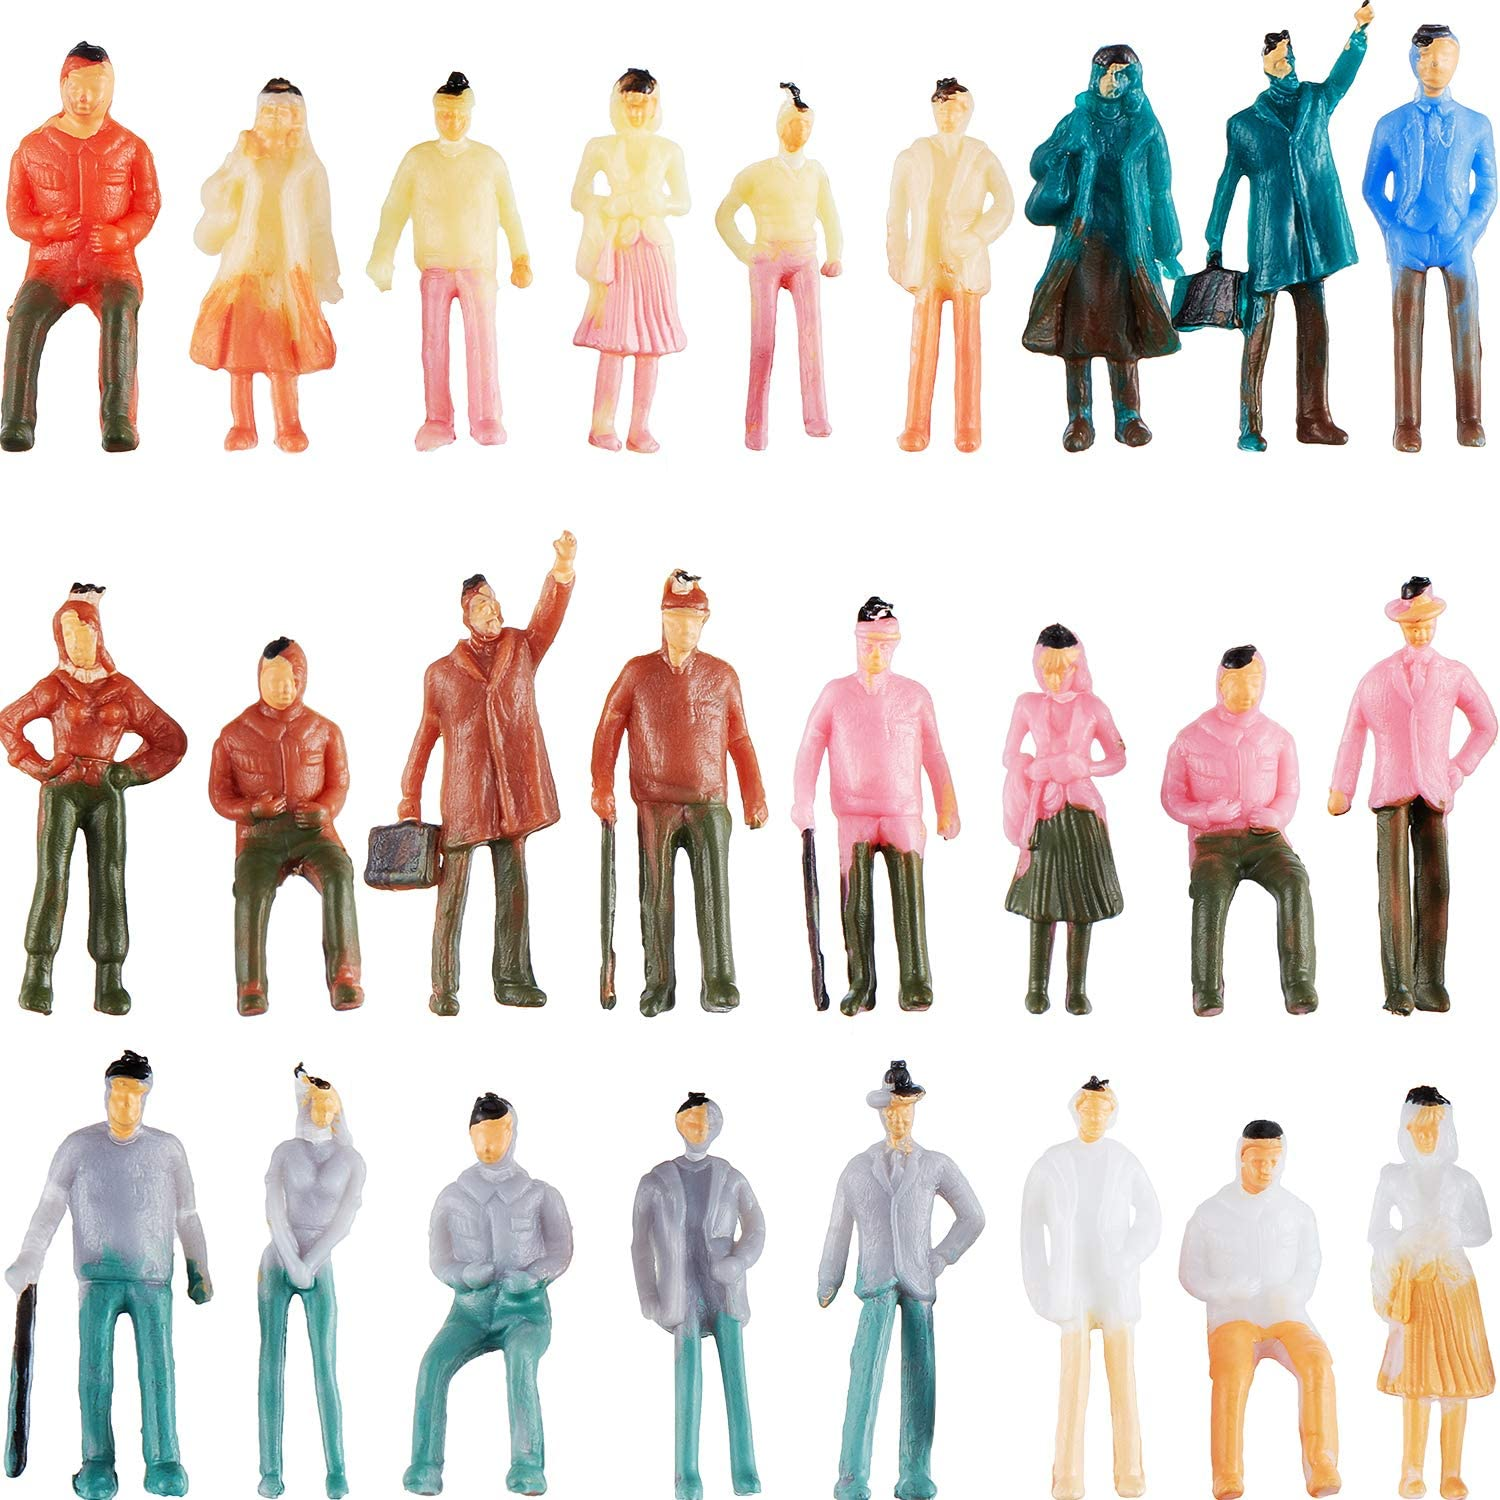 100 Pieces People Figurines 1:75 Scale Model Trains Architectural Plastic People Figures Tiny People Sitting und Standing für Miniature Scenes